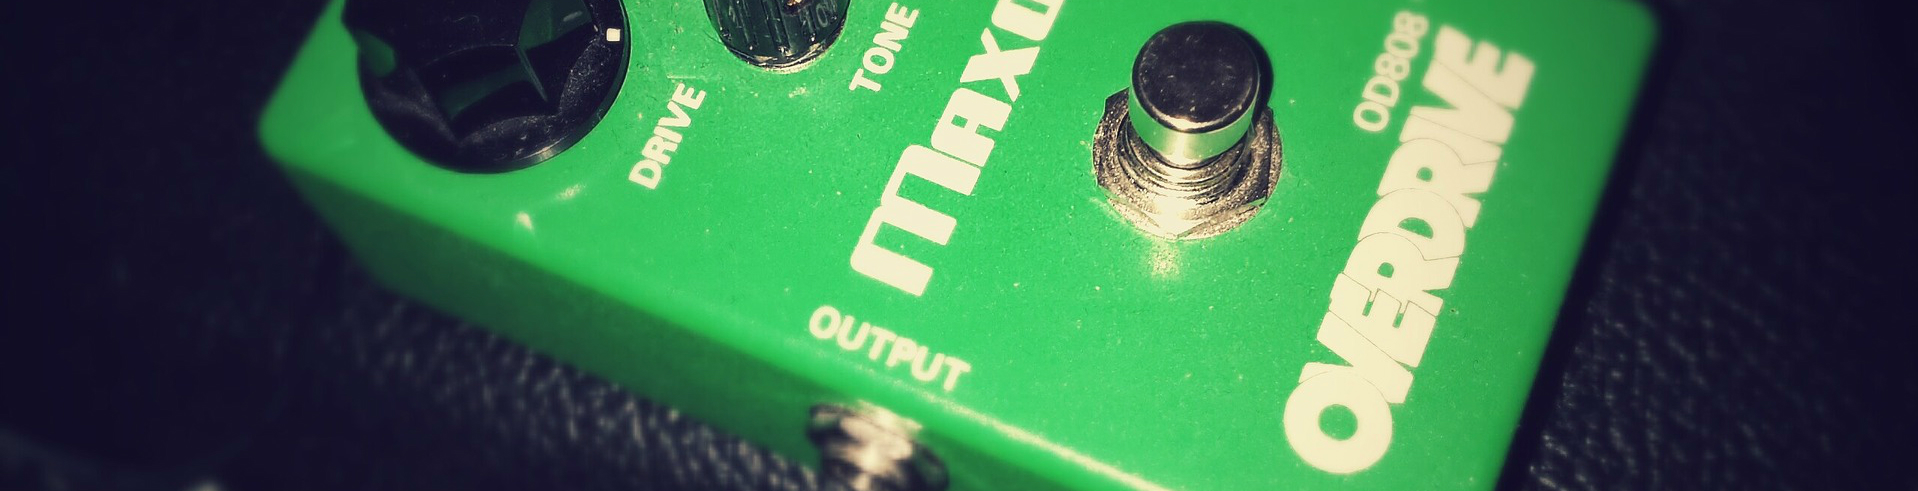 An overdrive guitar pedal